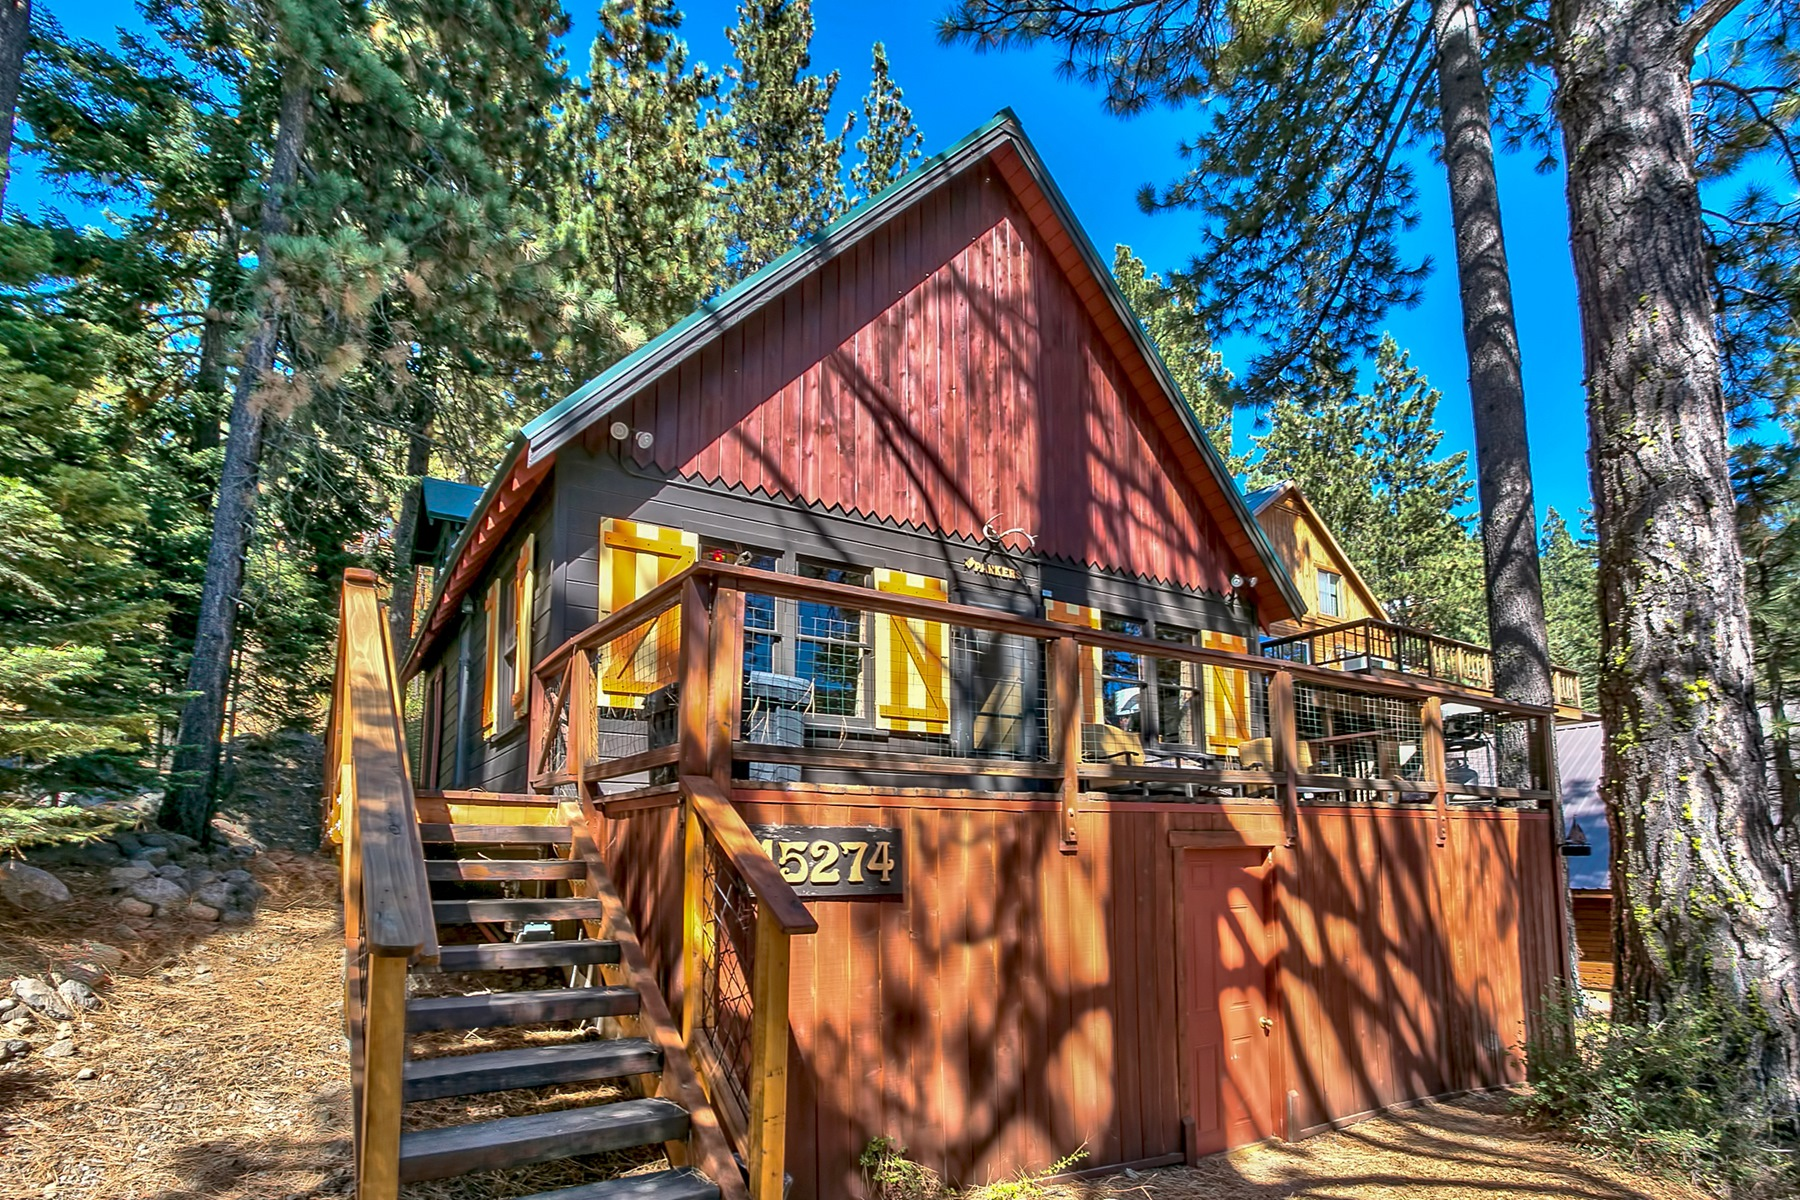 Single Family Home for Active at 15274 Donner Pass Road Truckee, California 96161 United States